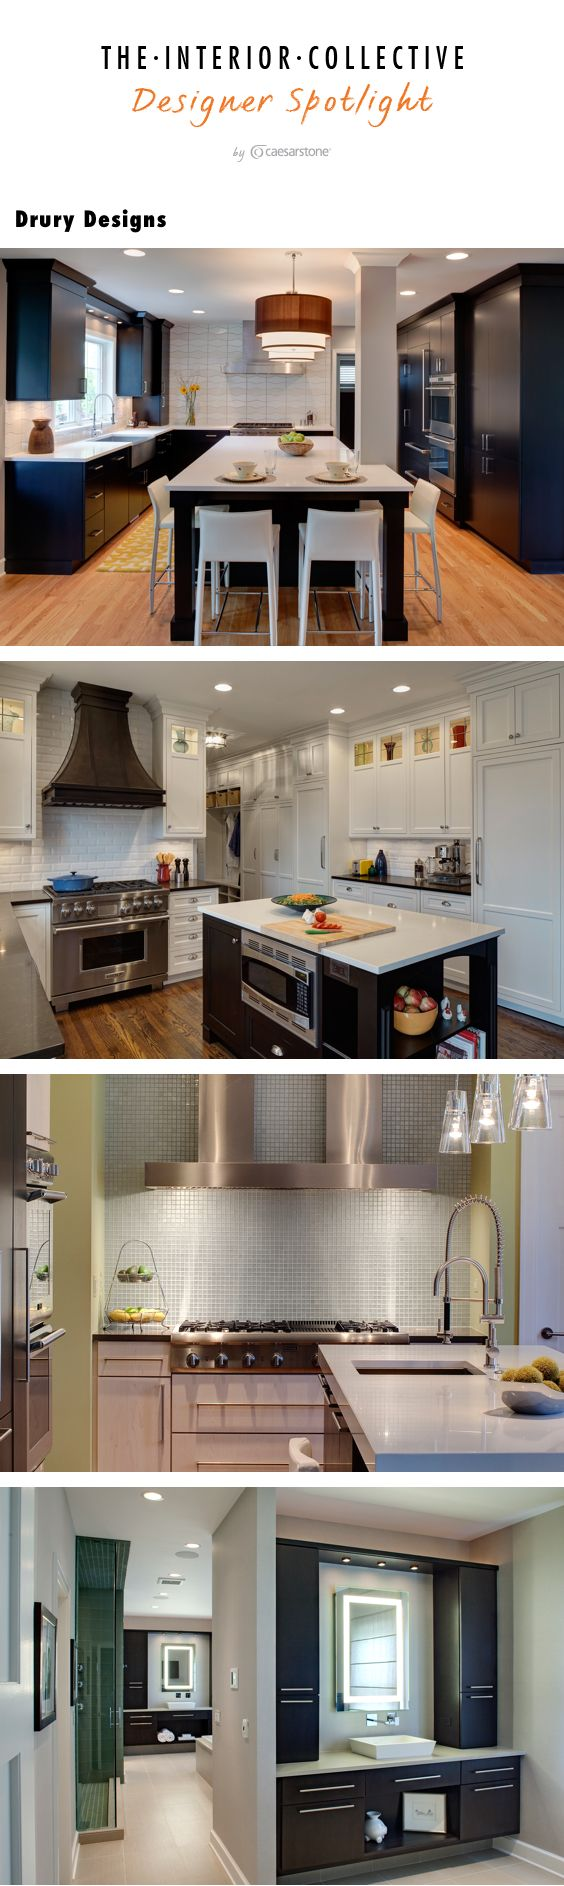 Drury Design Is An Interior Firm Located In Chicago Spearheaded By The Talented